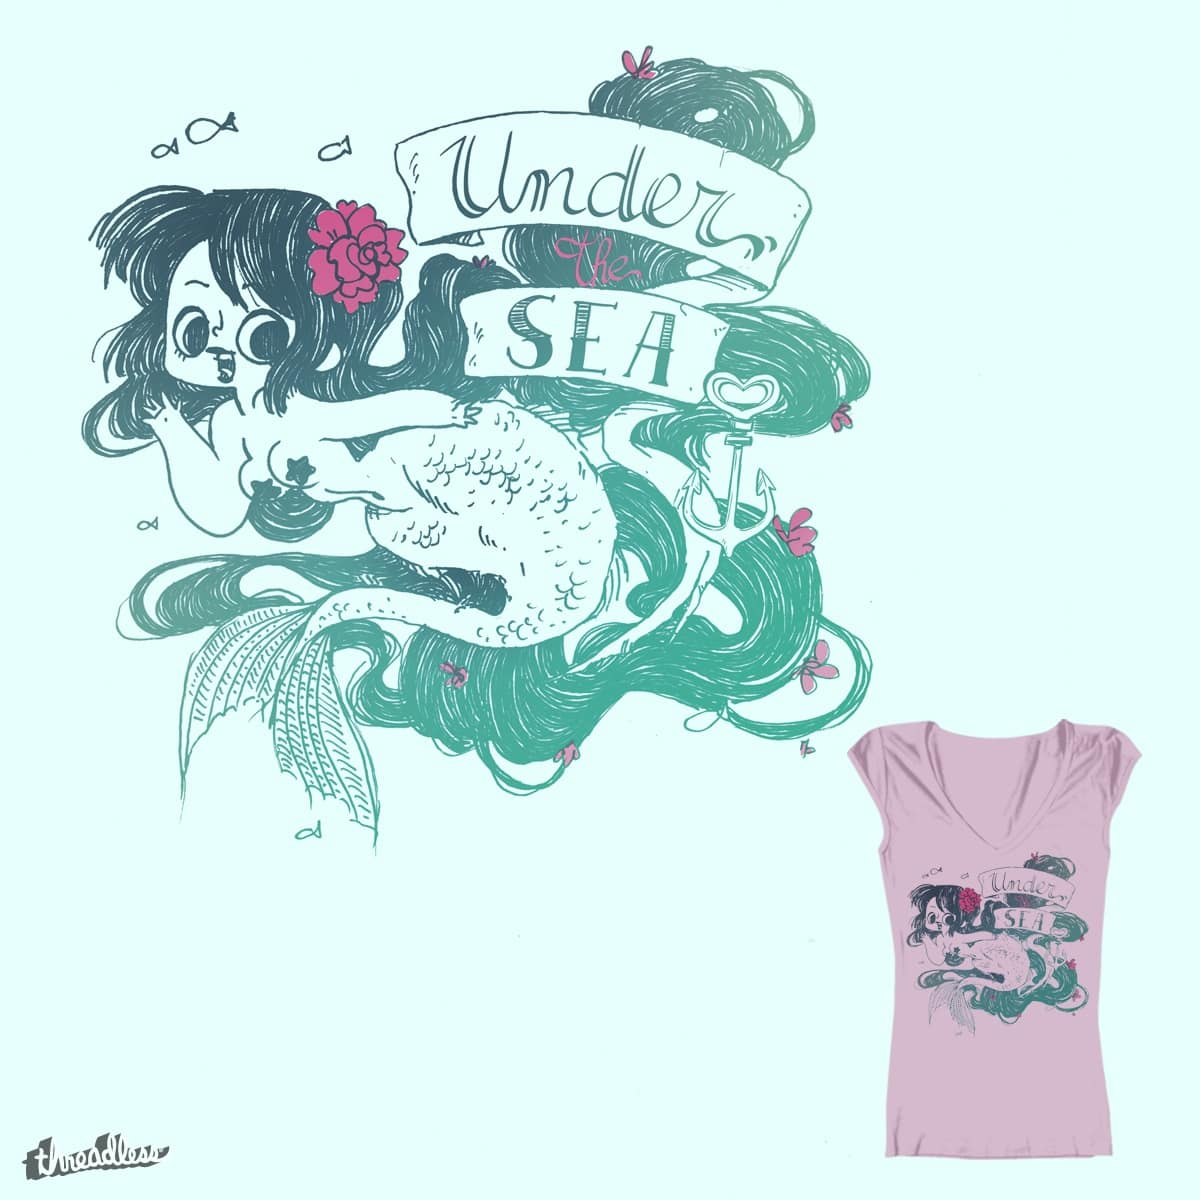 Under the Sea by MissPATY on Threadless